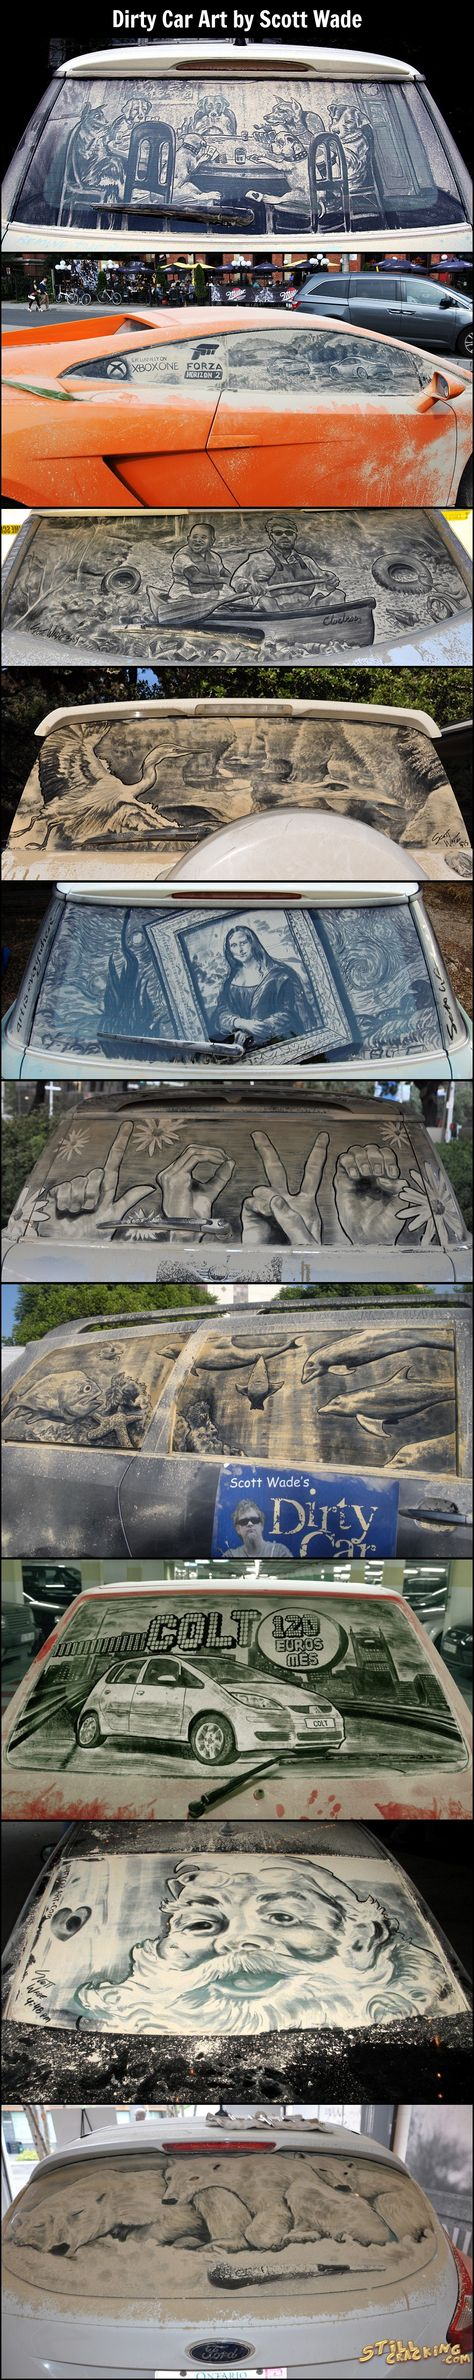 Dirty Car Art Scott Wade Httpwwwallstarautomotivecom - Scott wade makes wonderful art dusty car windows